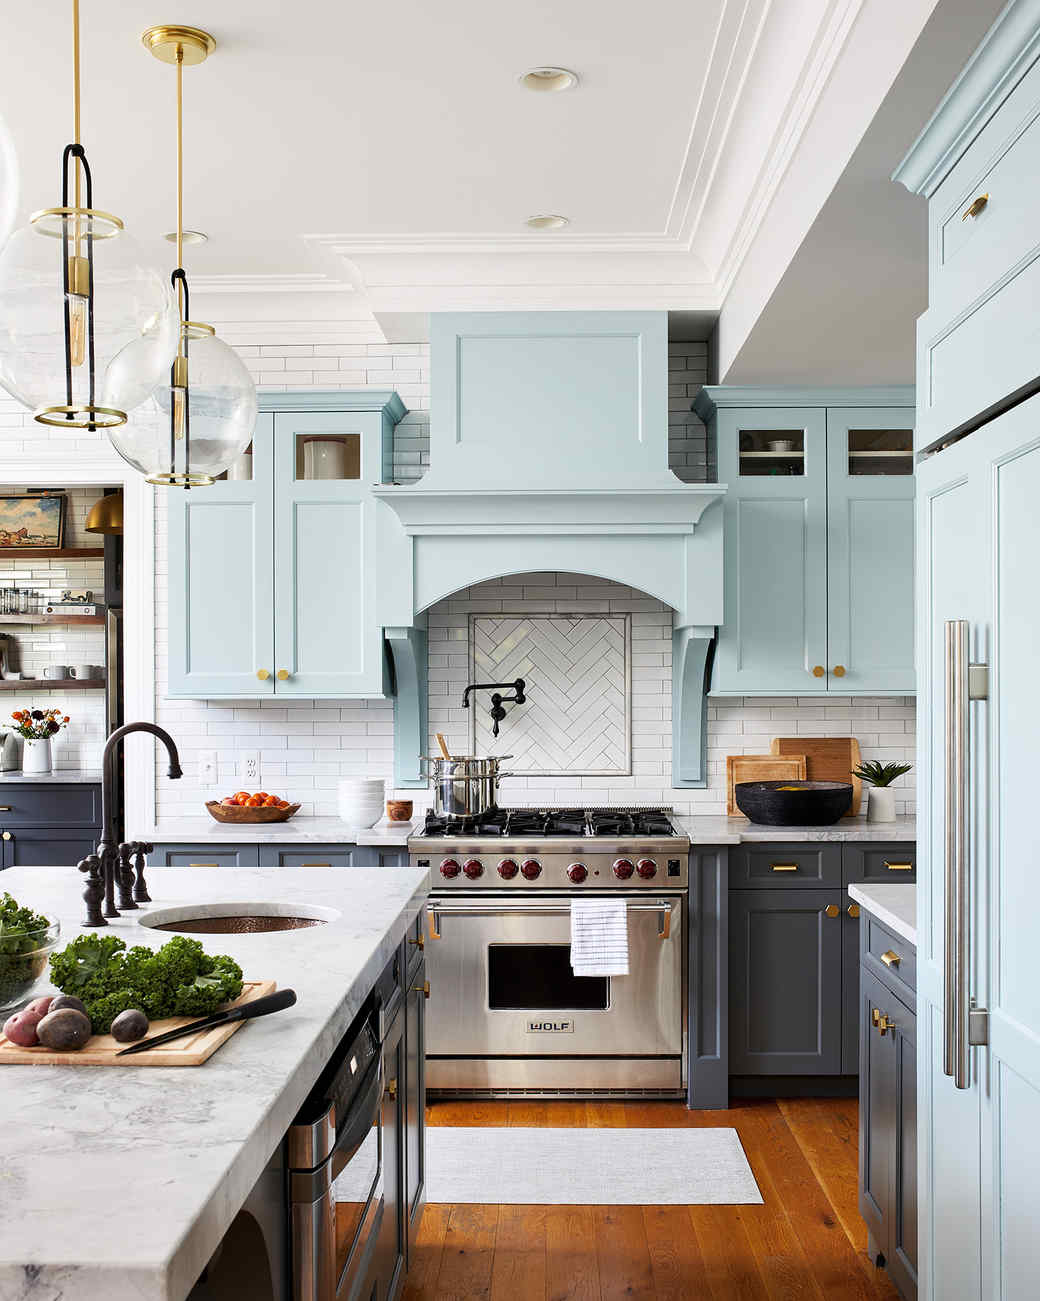 Kitchen Renovation 11 Common Kitchen Renovation Mistakes To Avoid Martha Stewart